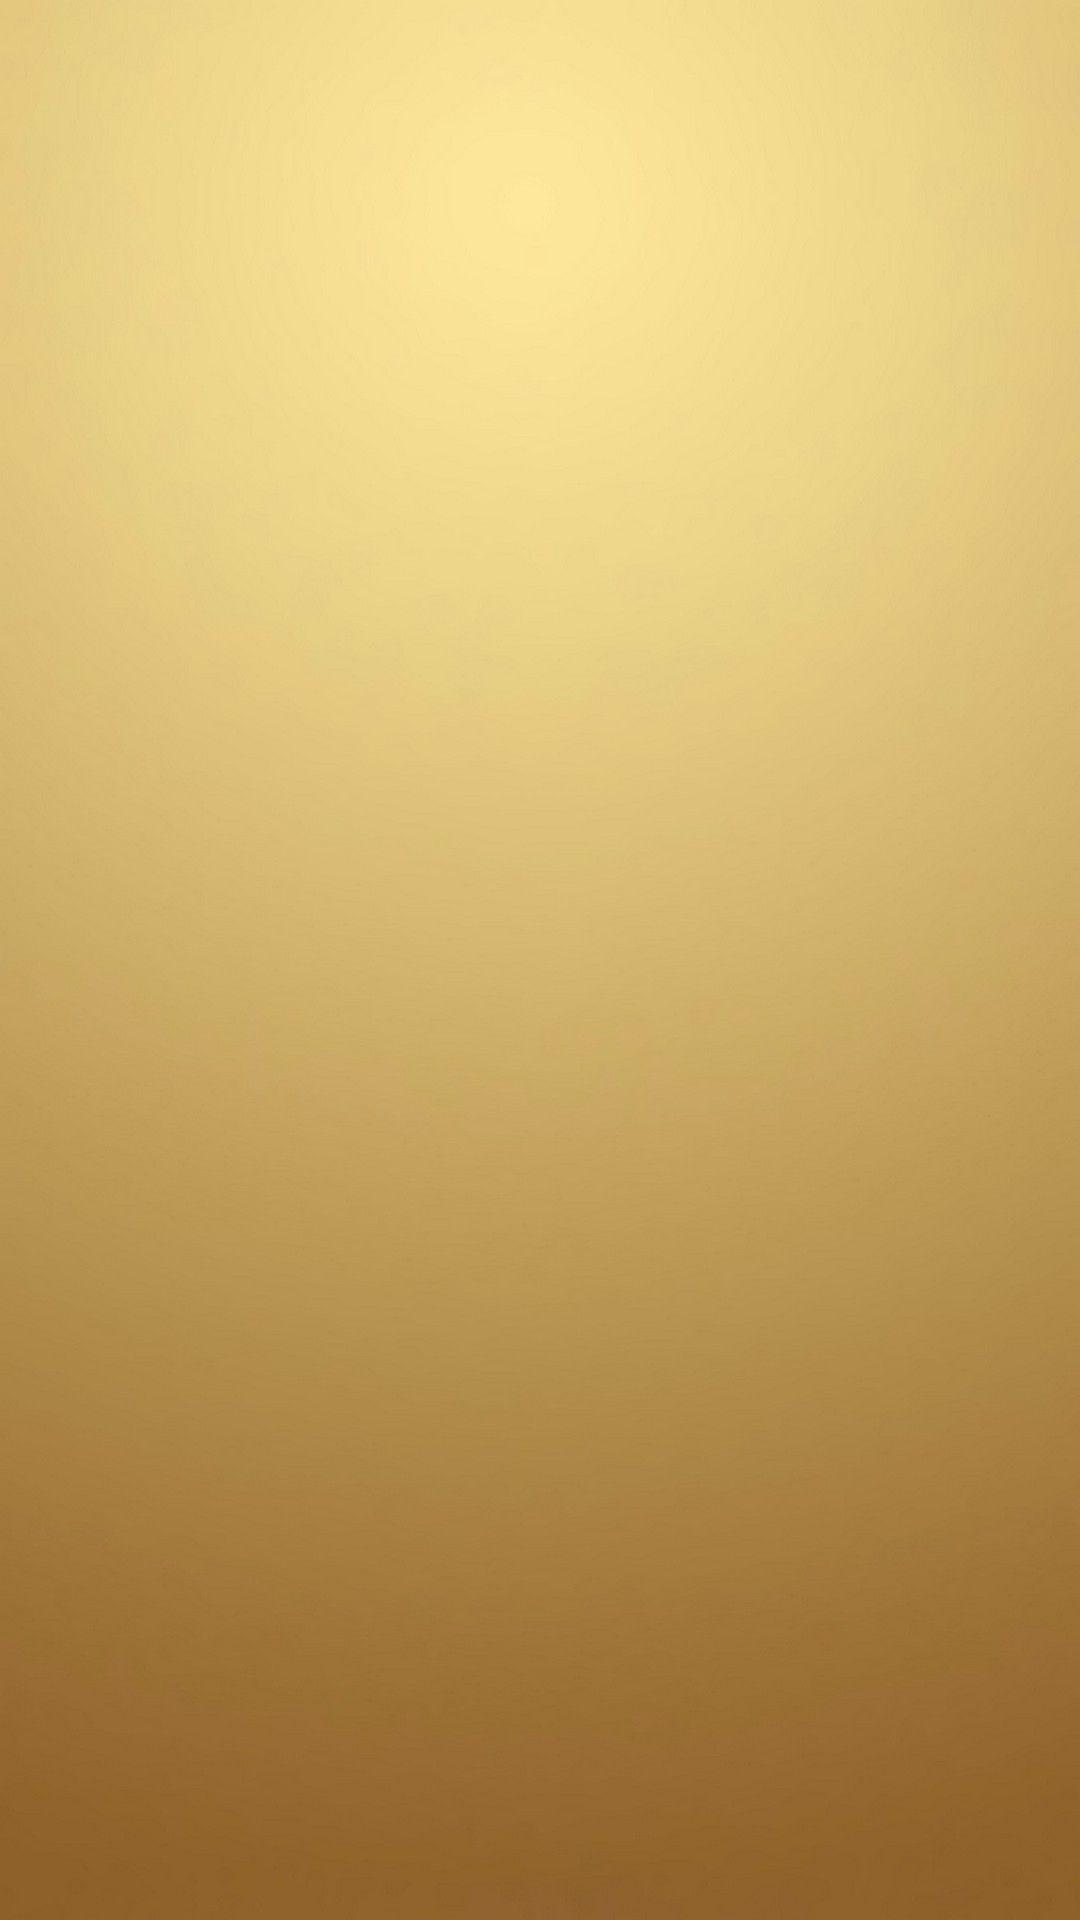 Plain Gold Wallpaper For IPhone